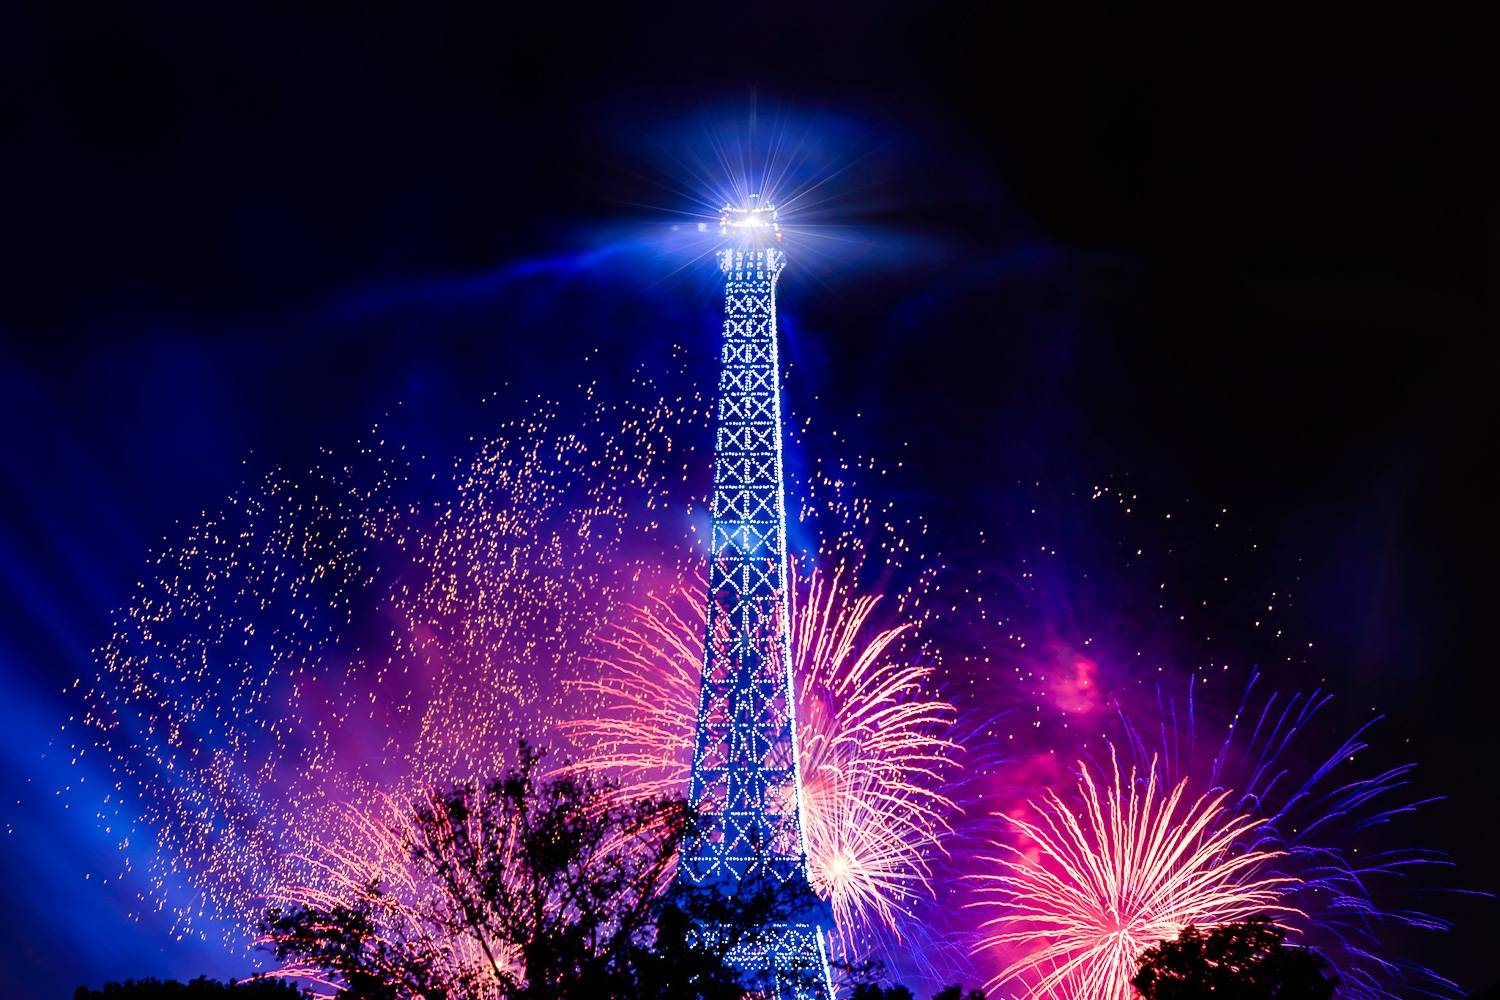 Image of fireworks exploding behind the Eiffel Tower on Bastille Day.